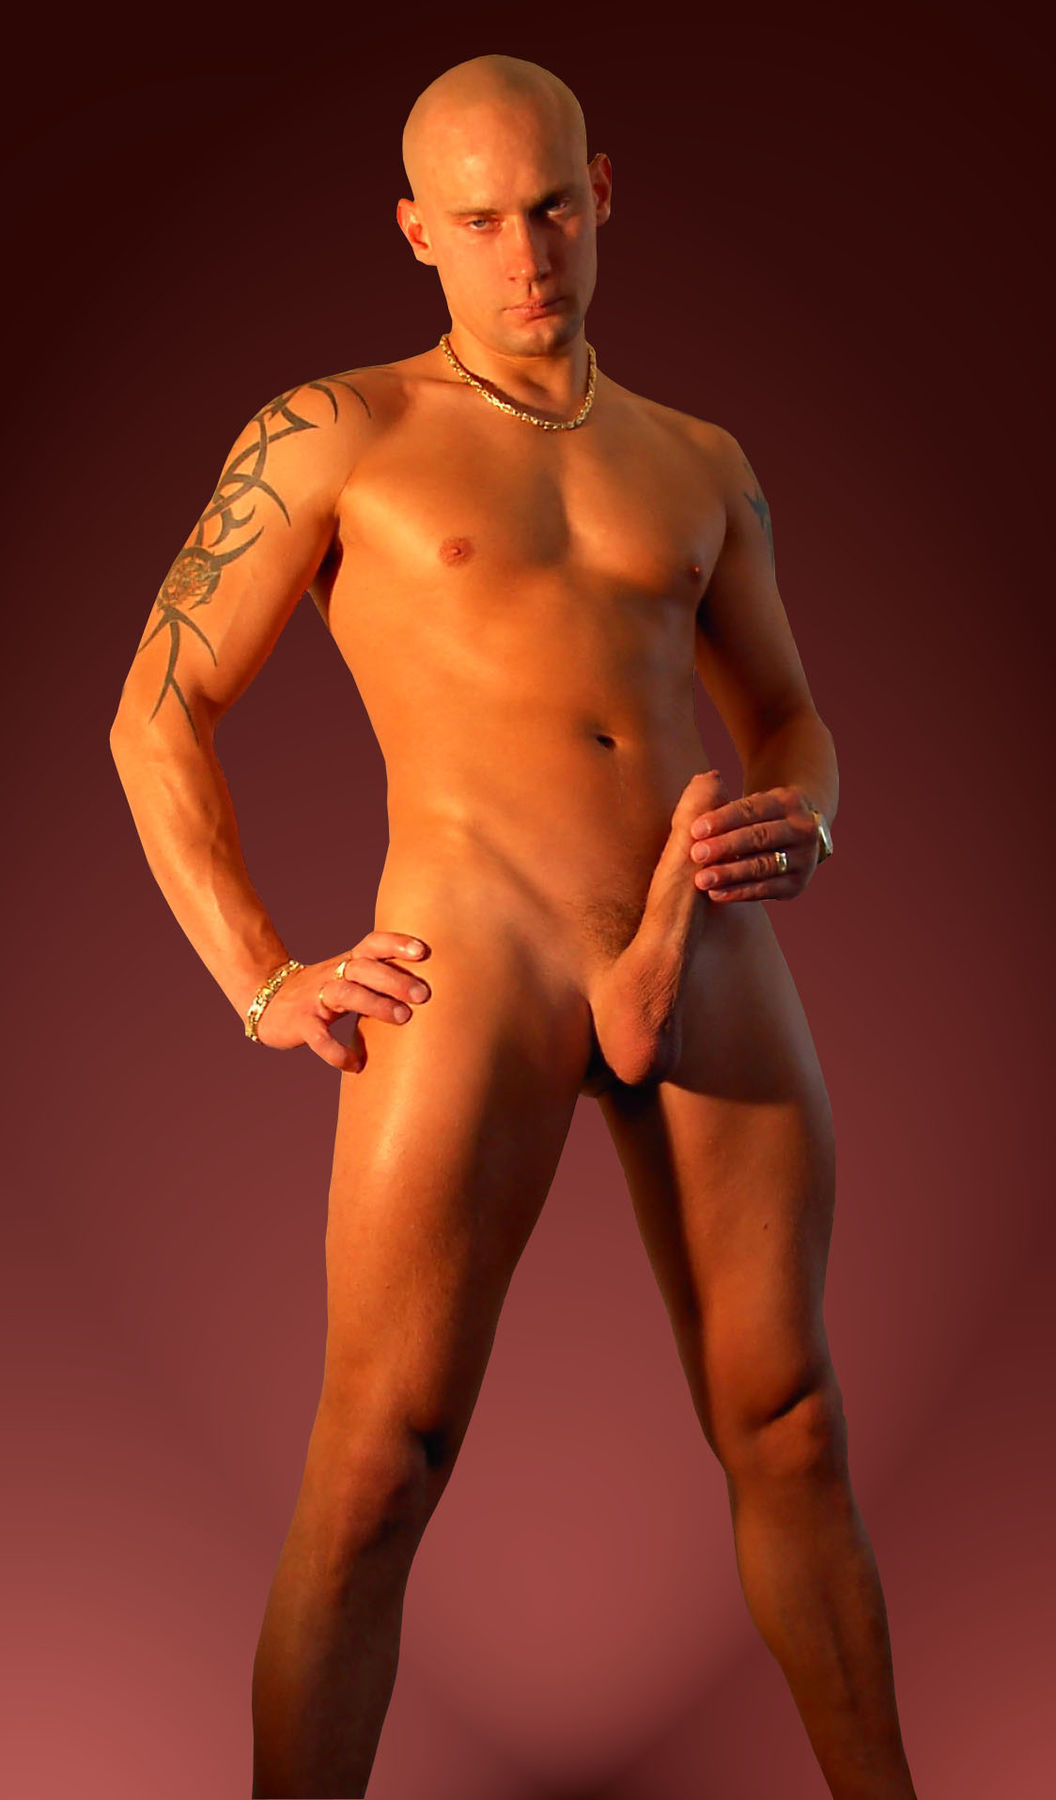 escort alvesta one gay escort